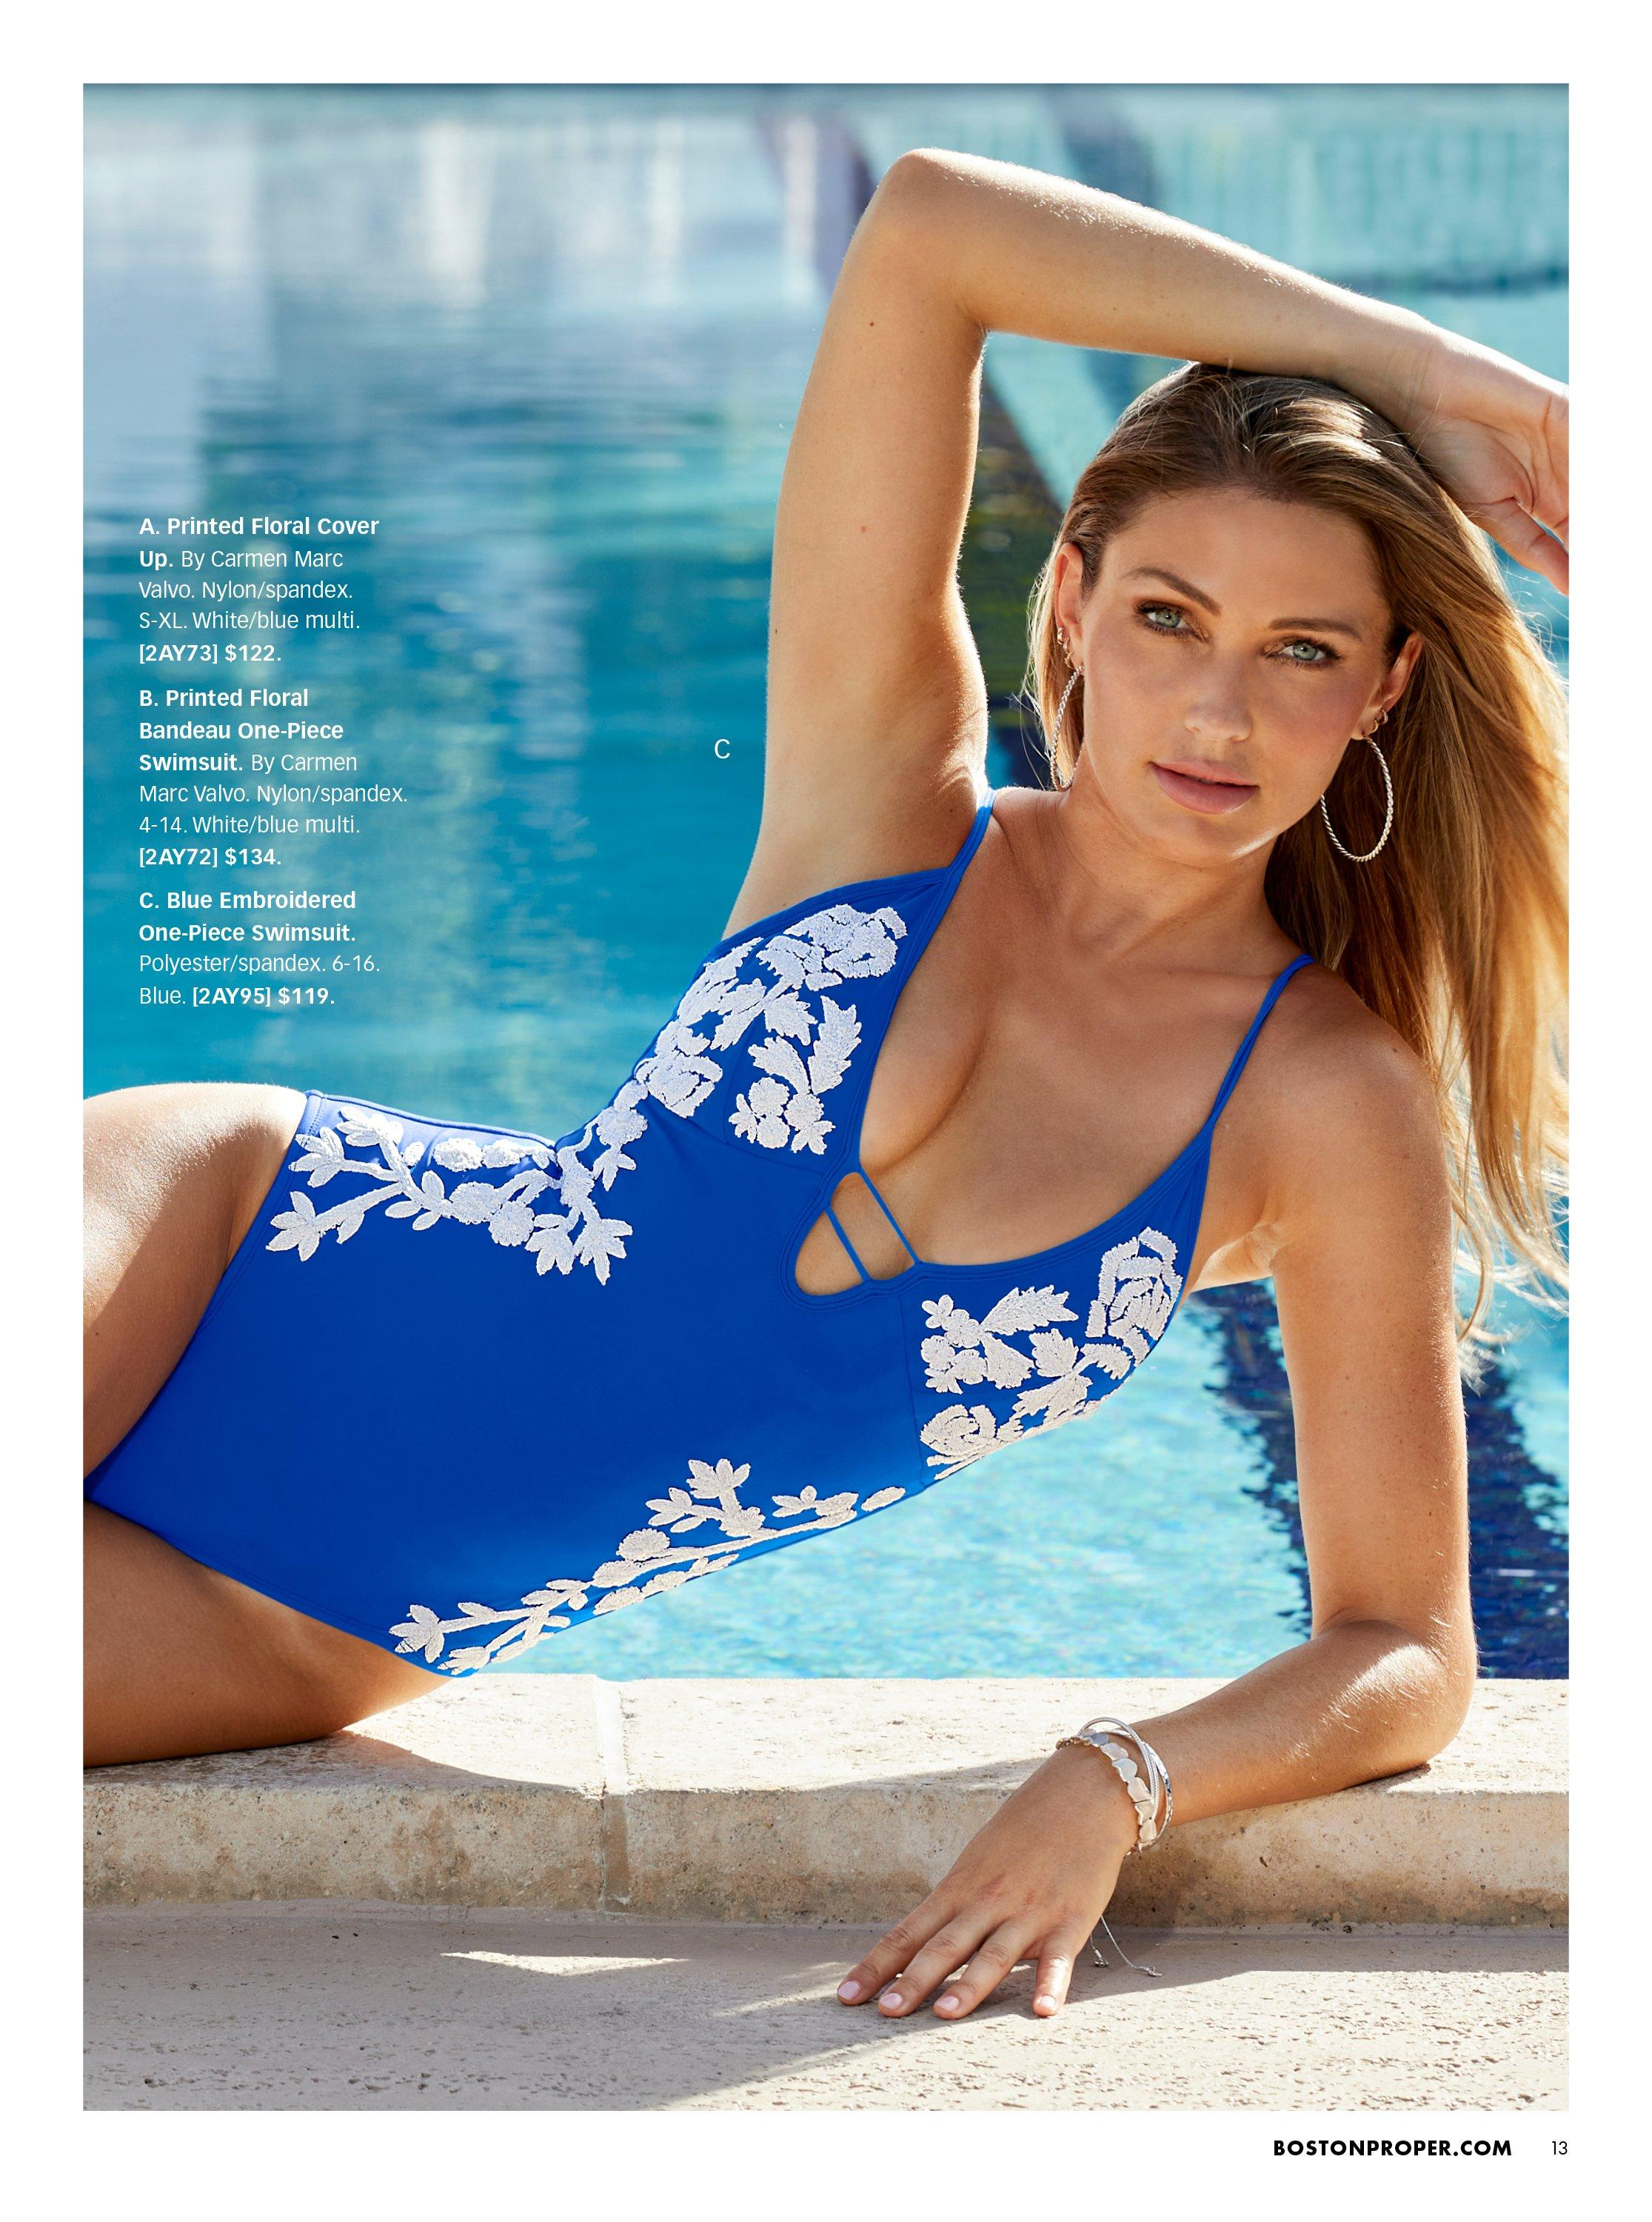 model wearing a blue one-piece swimsuit with white embroidered flowers.